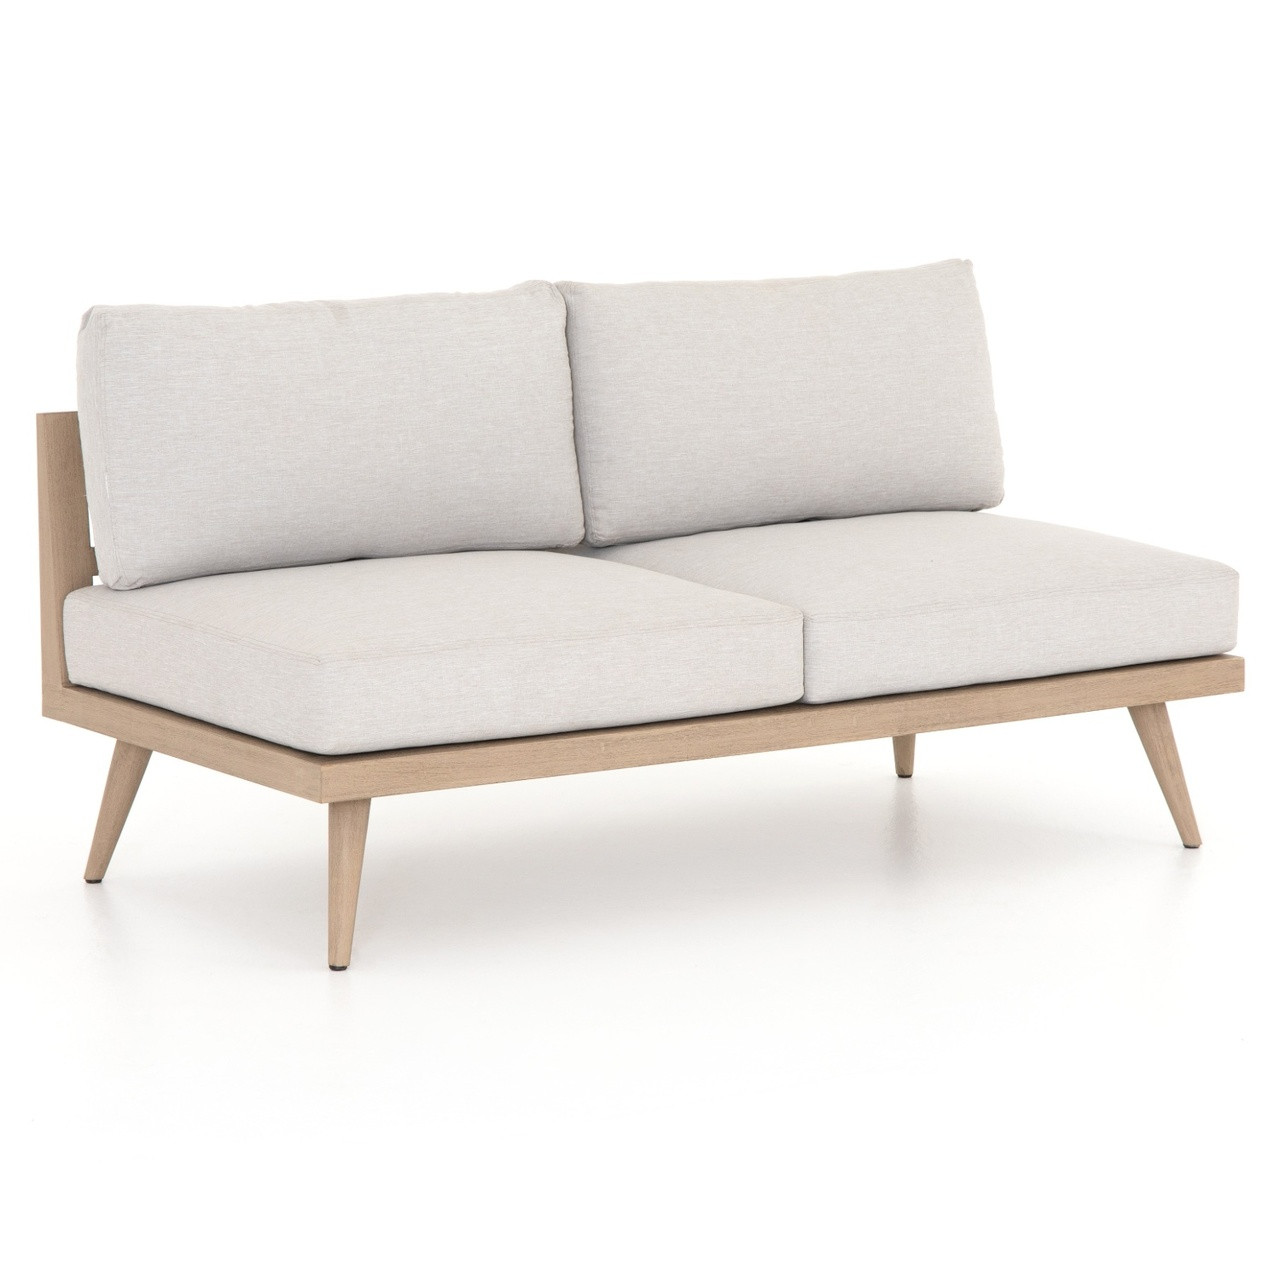 Sofa 60er Tilly Modern Brown Teak 2 Seater Armless Outdoor Sofa 60